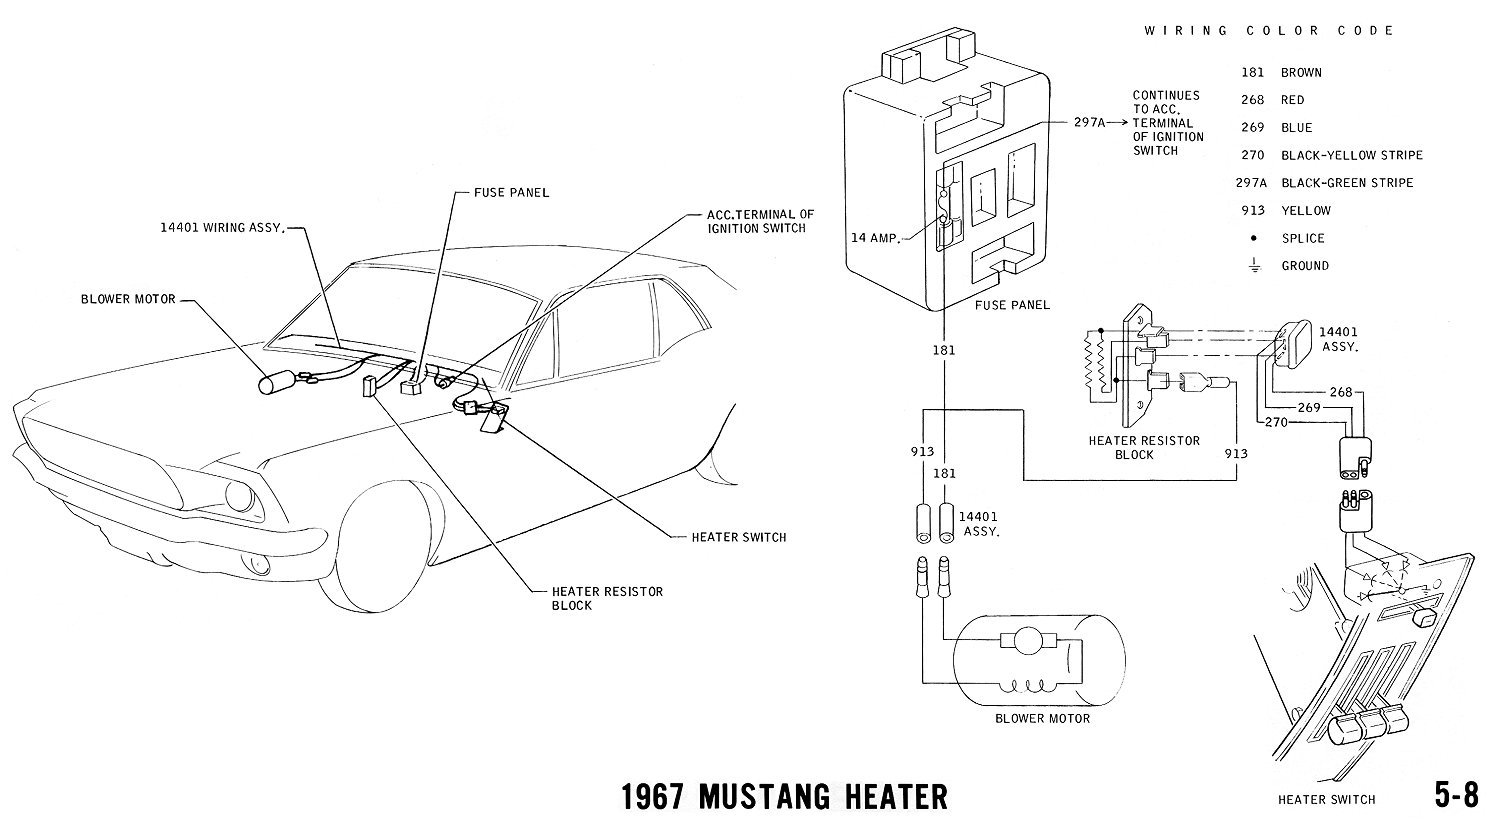 92 Mustang Blower Motor Wiring Diagram